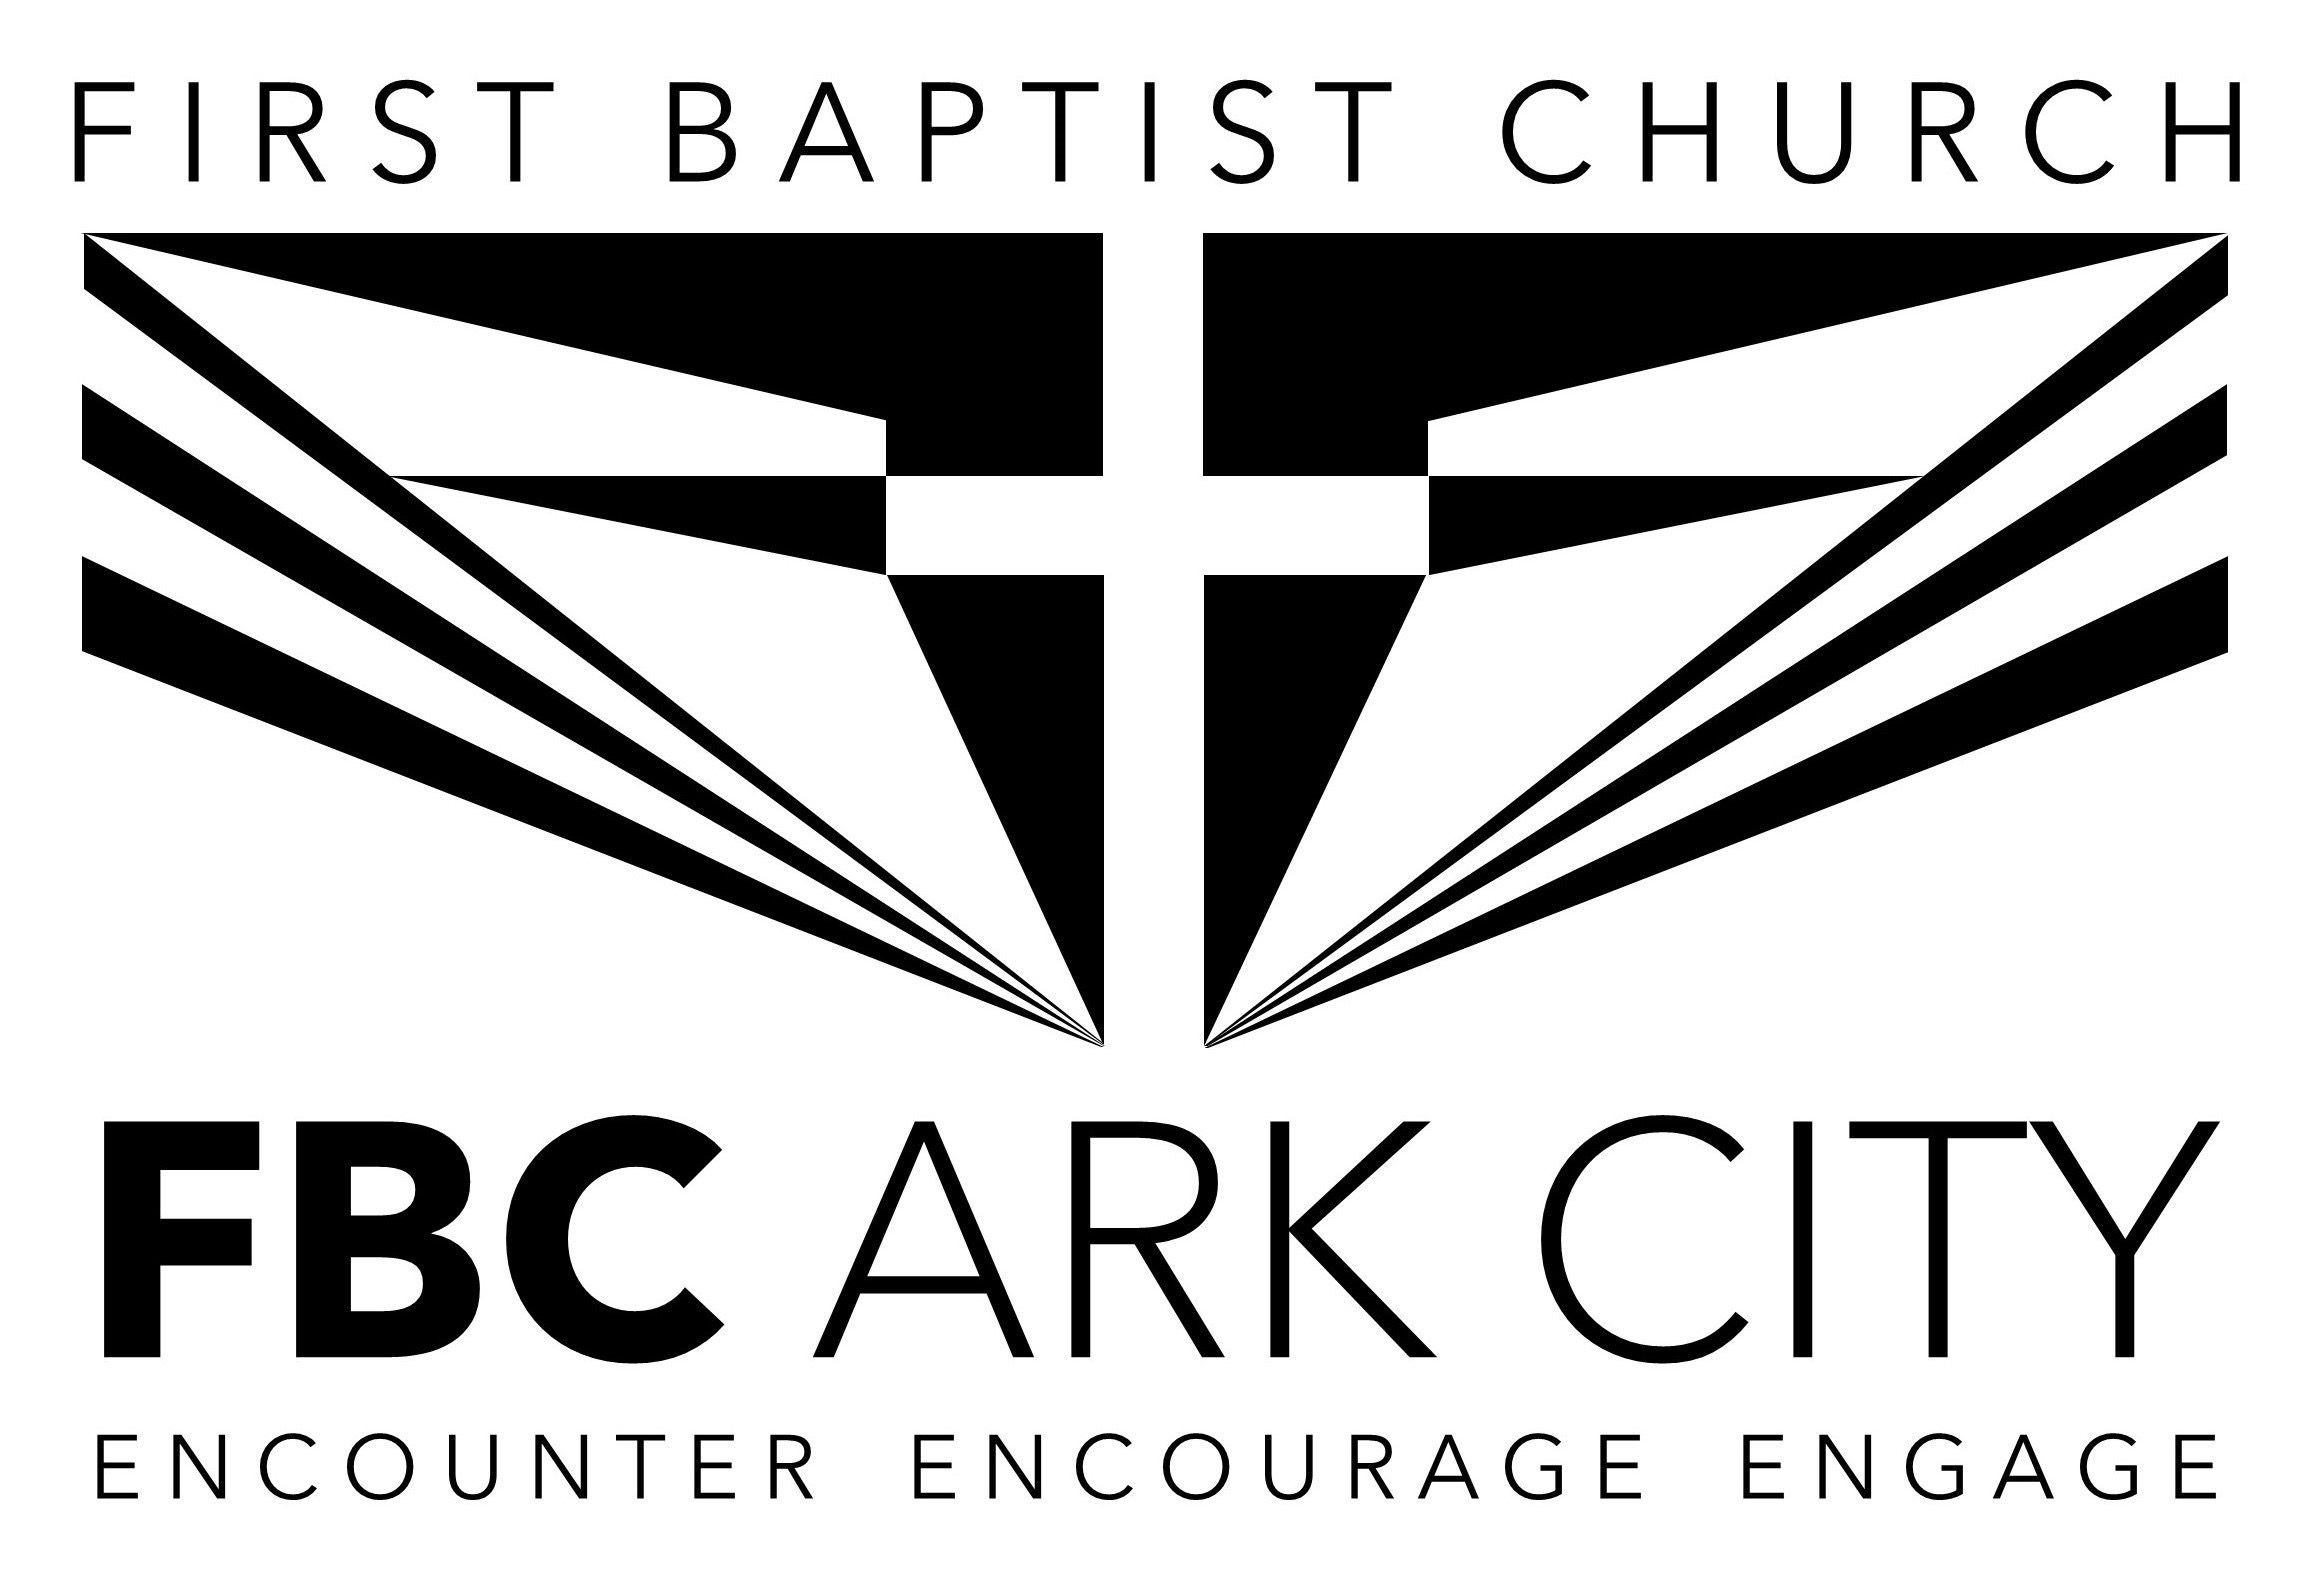 FBC ARK CITY